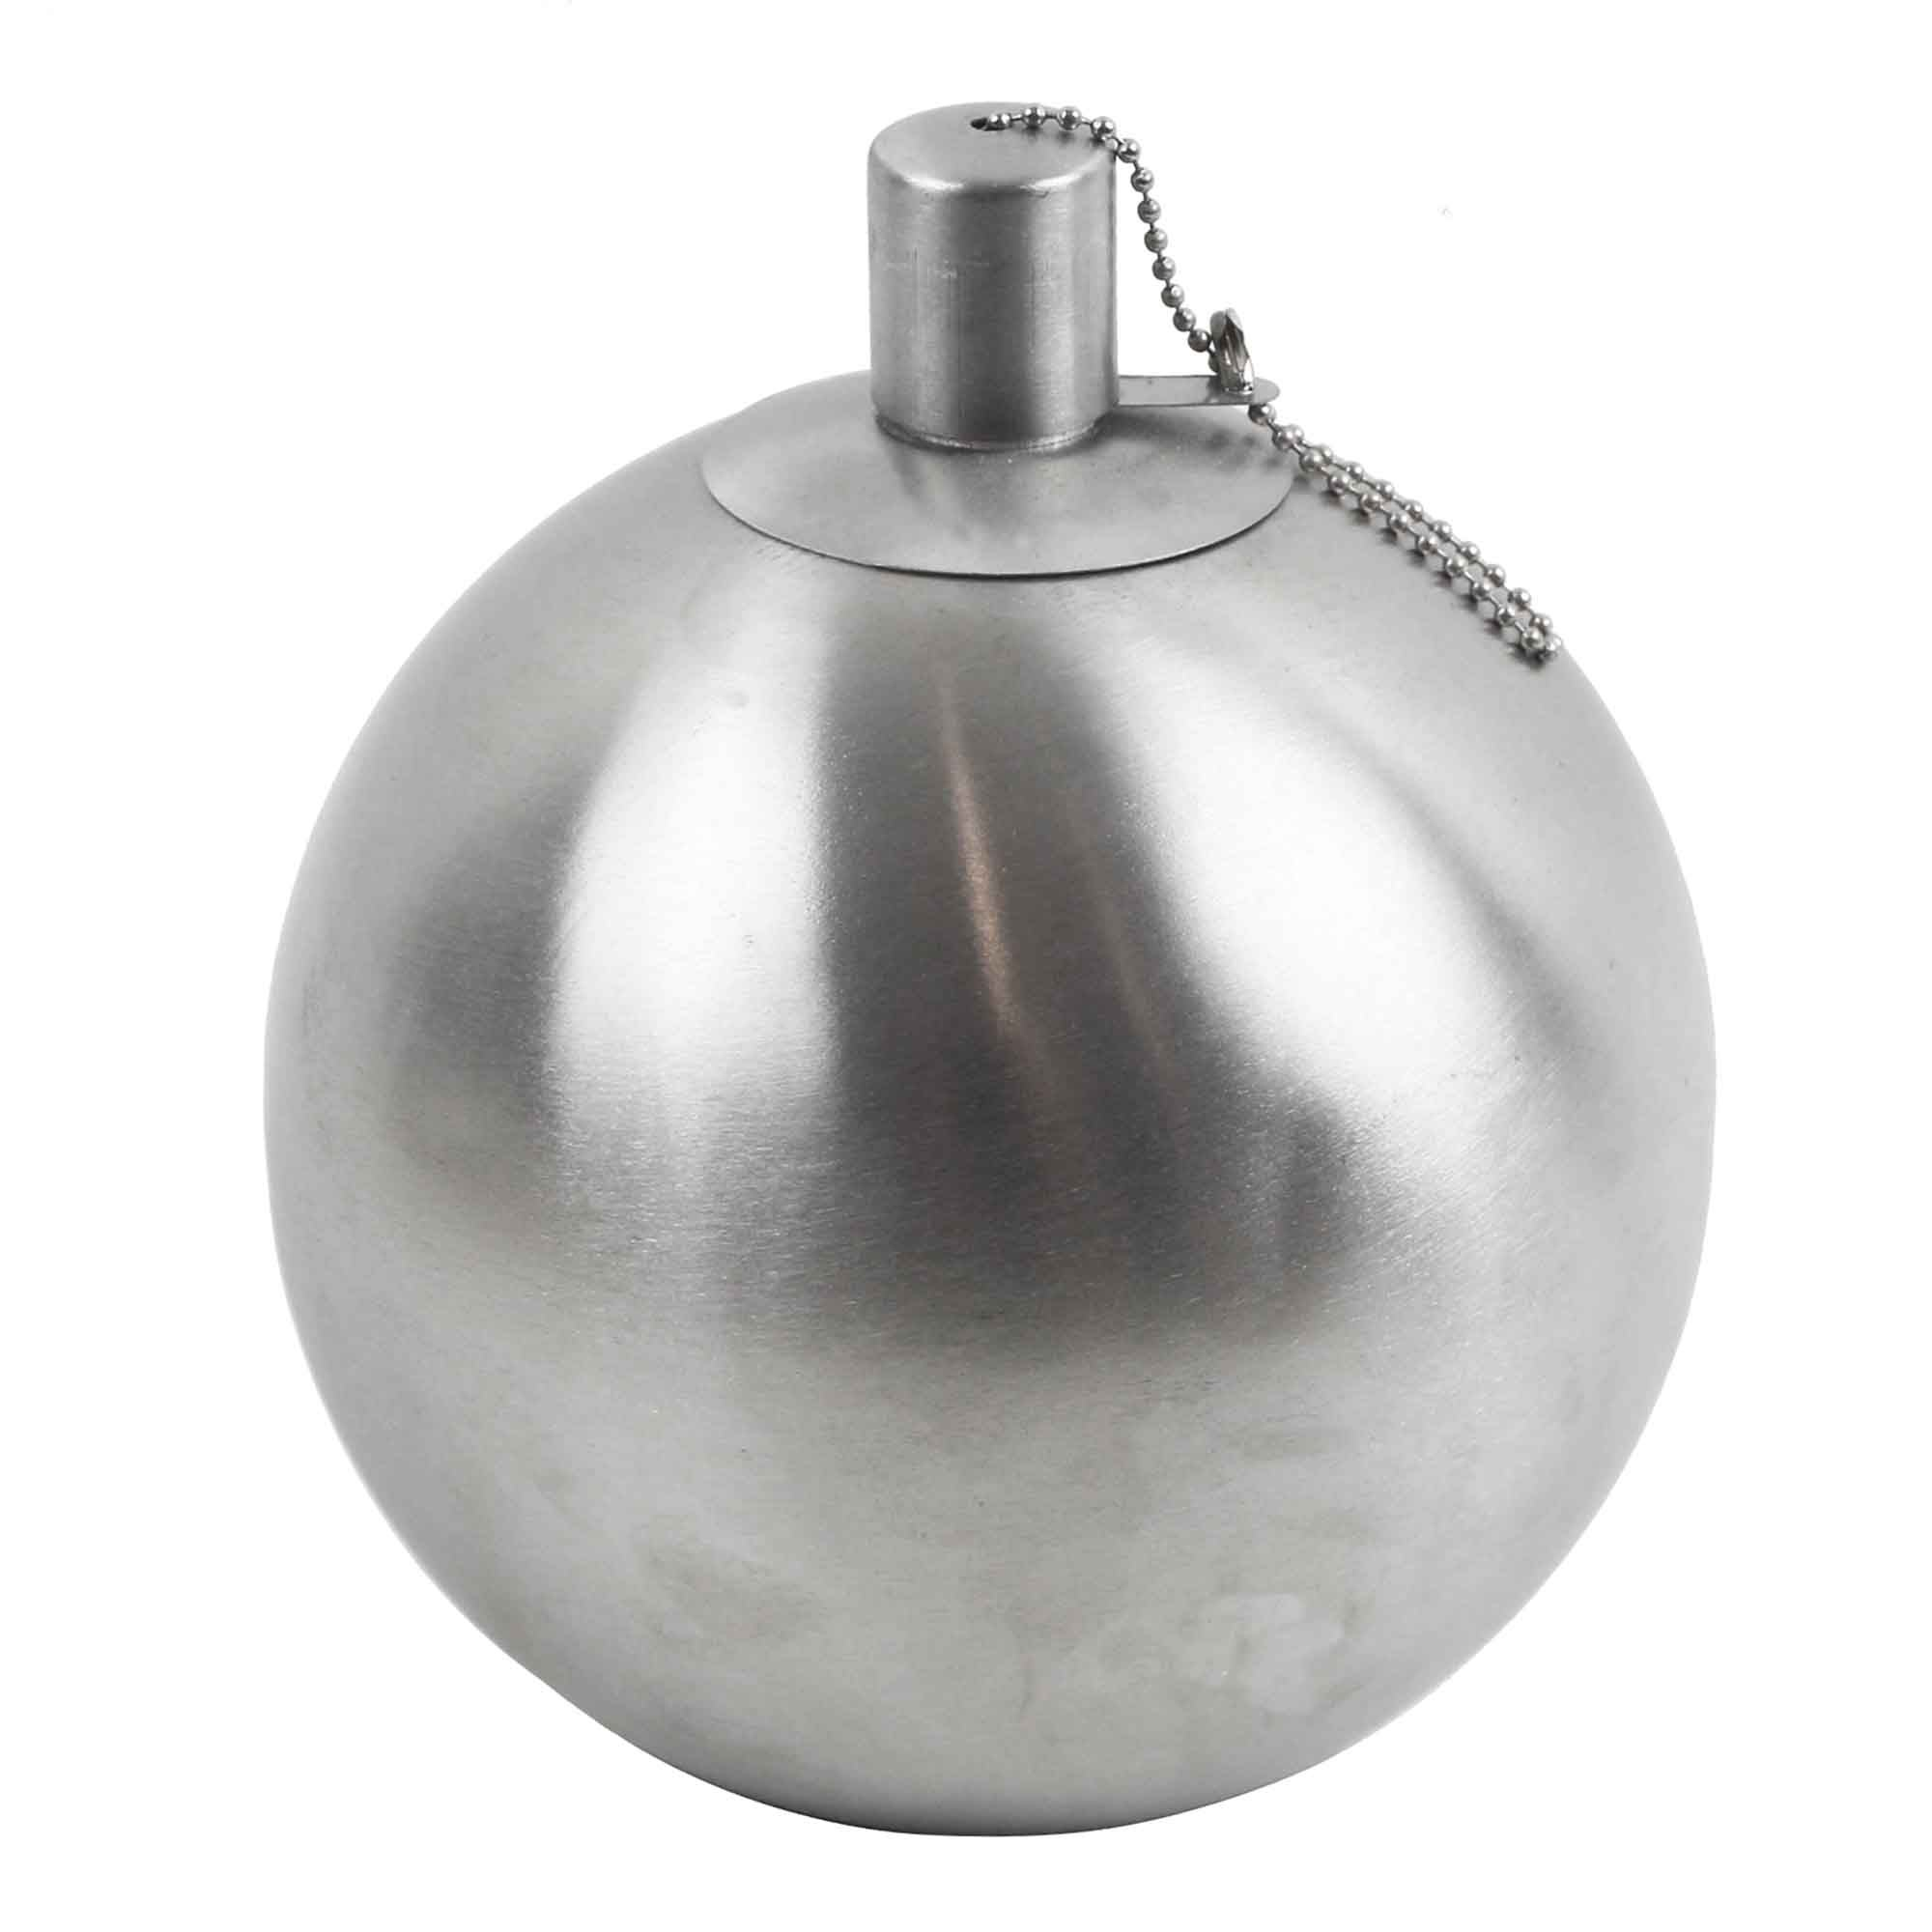 Image of 16cm Stainless Steel Ball Oil Lamp Silver